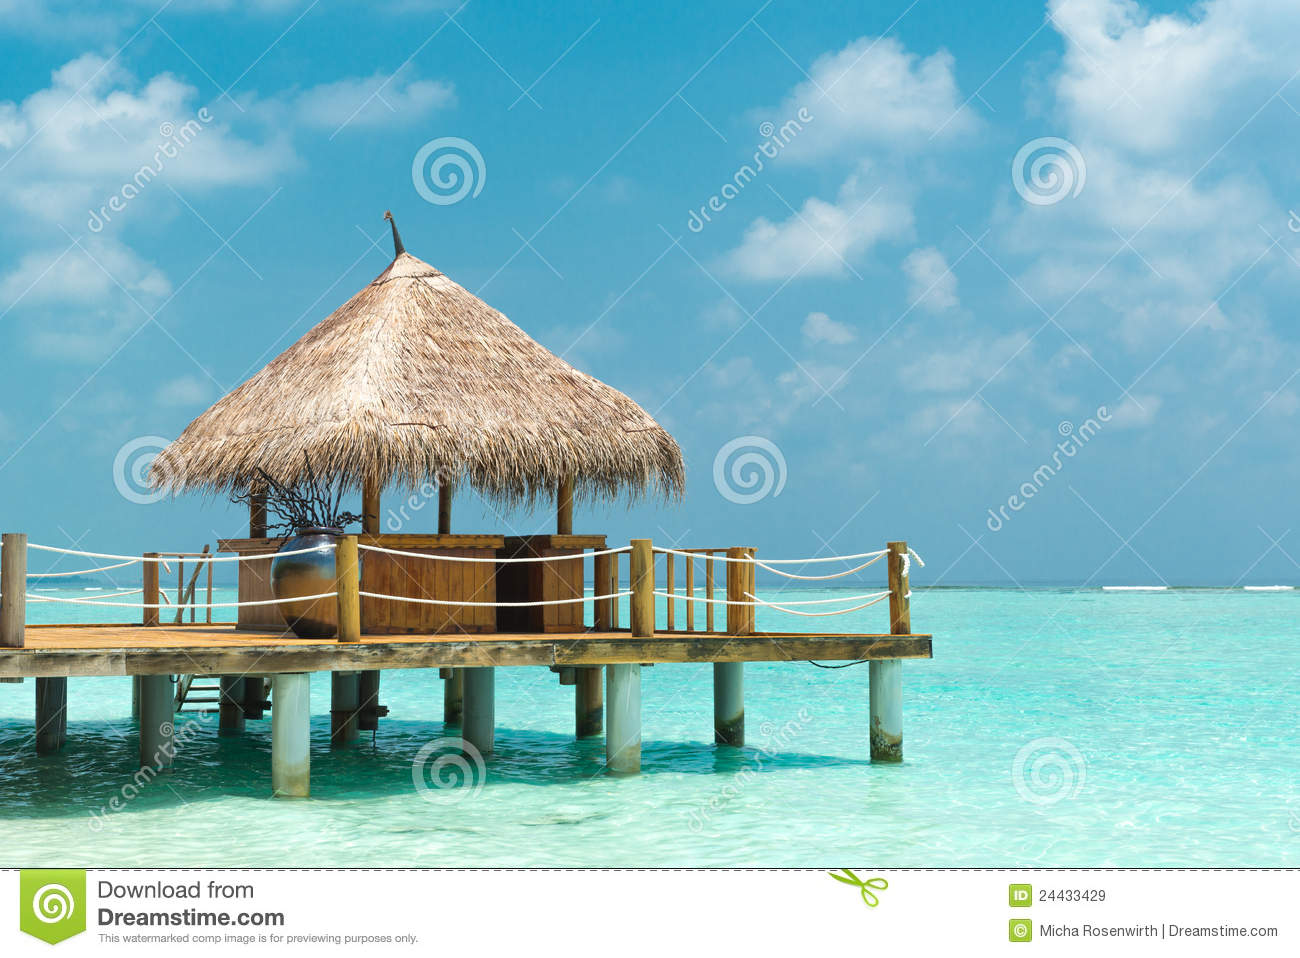 cabane de plage image stock image du contexte caribbean. Black Bedroom Furniture Sets. Home Design Ideas